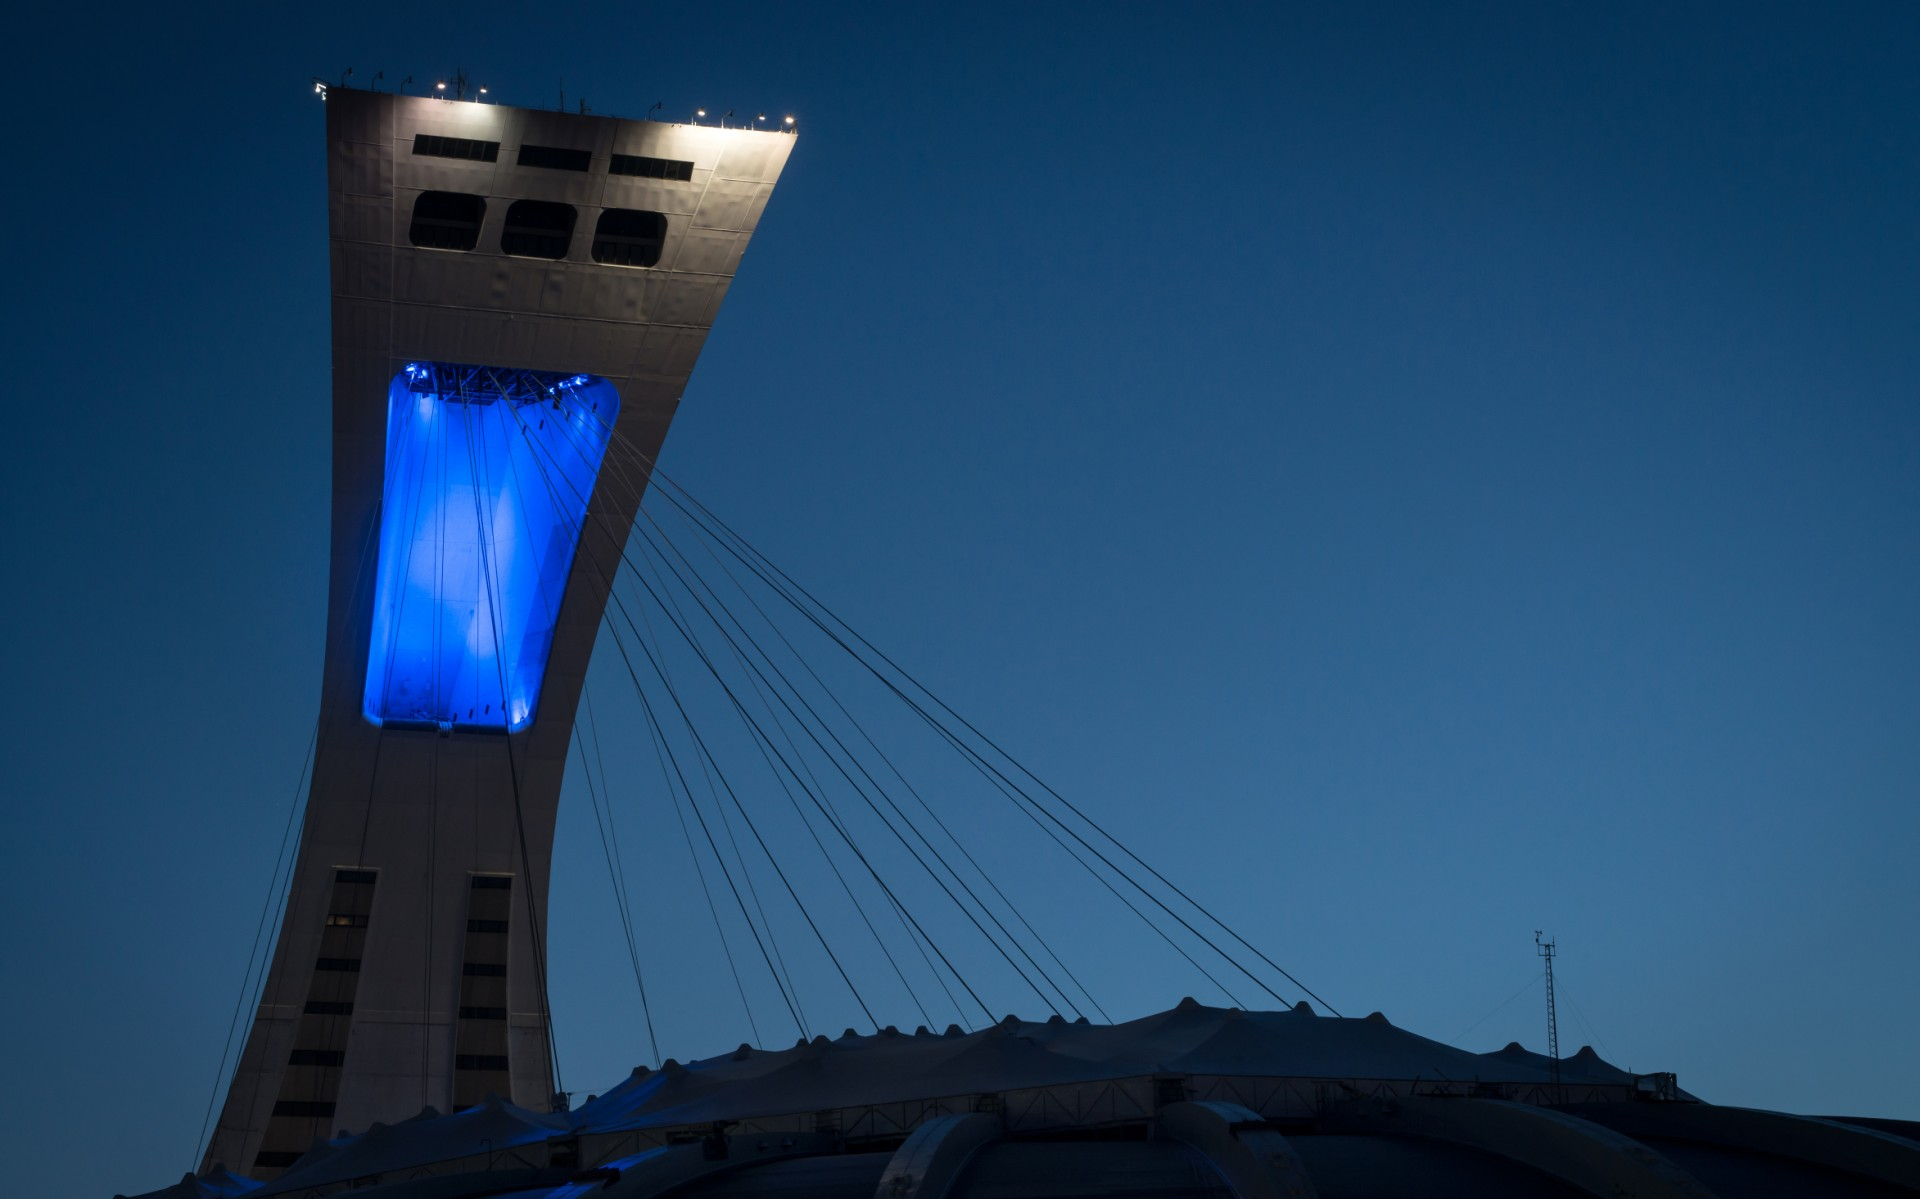 To modernize the tower's open arch lighting, Lumenbeam Large Color Changing luminaires with 6° and 20° beam angles were used.